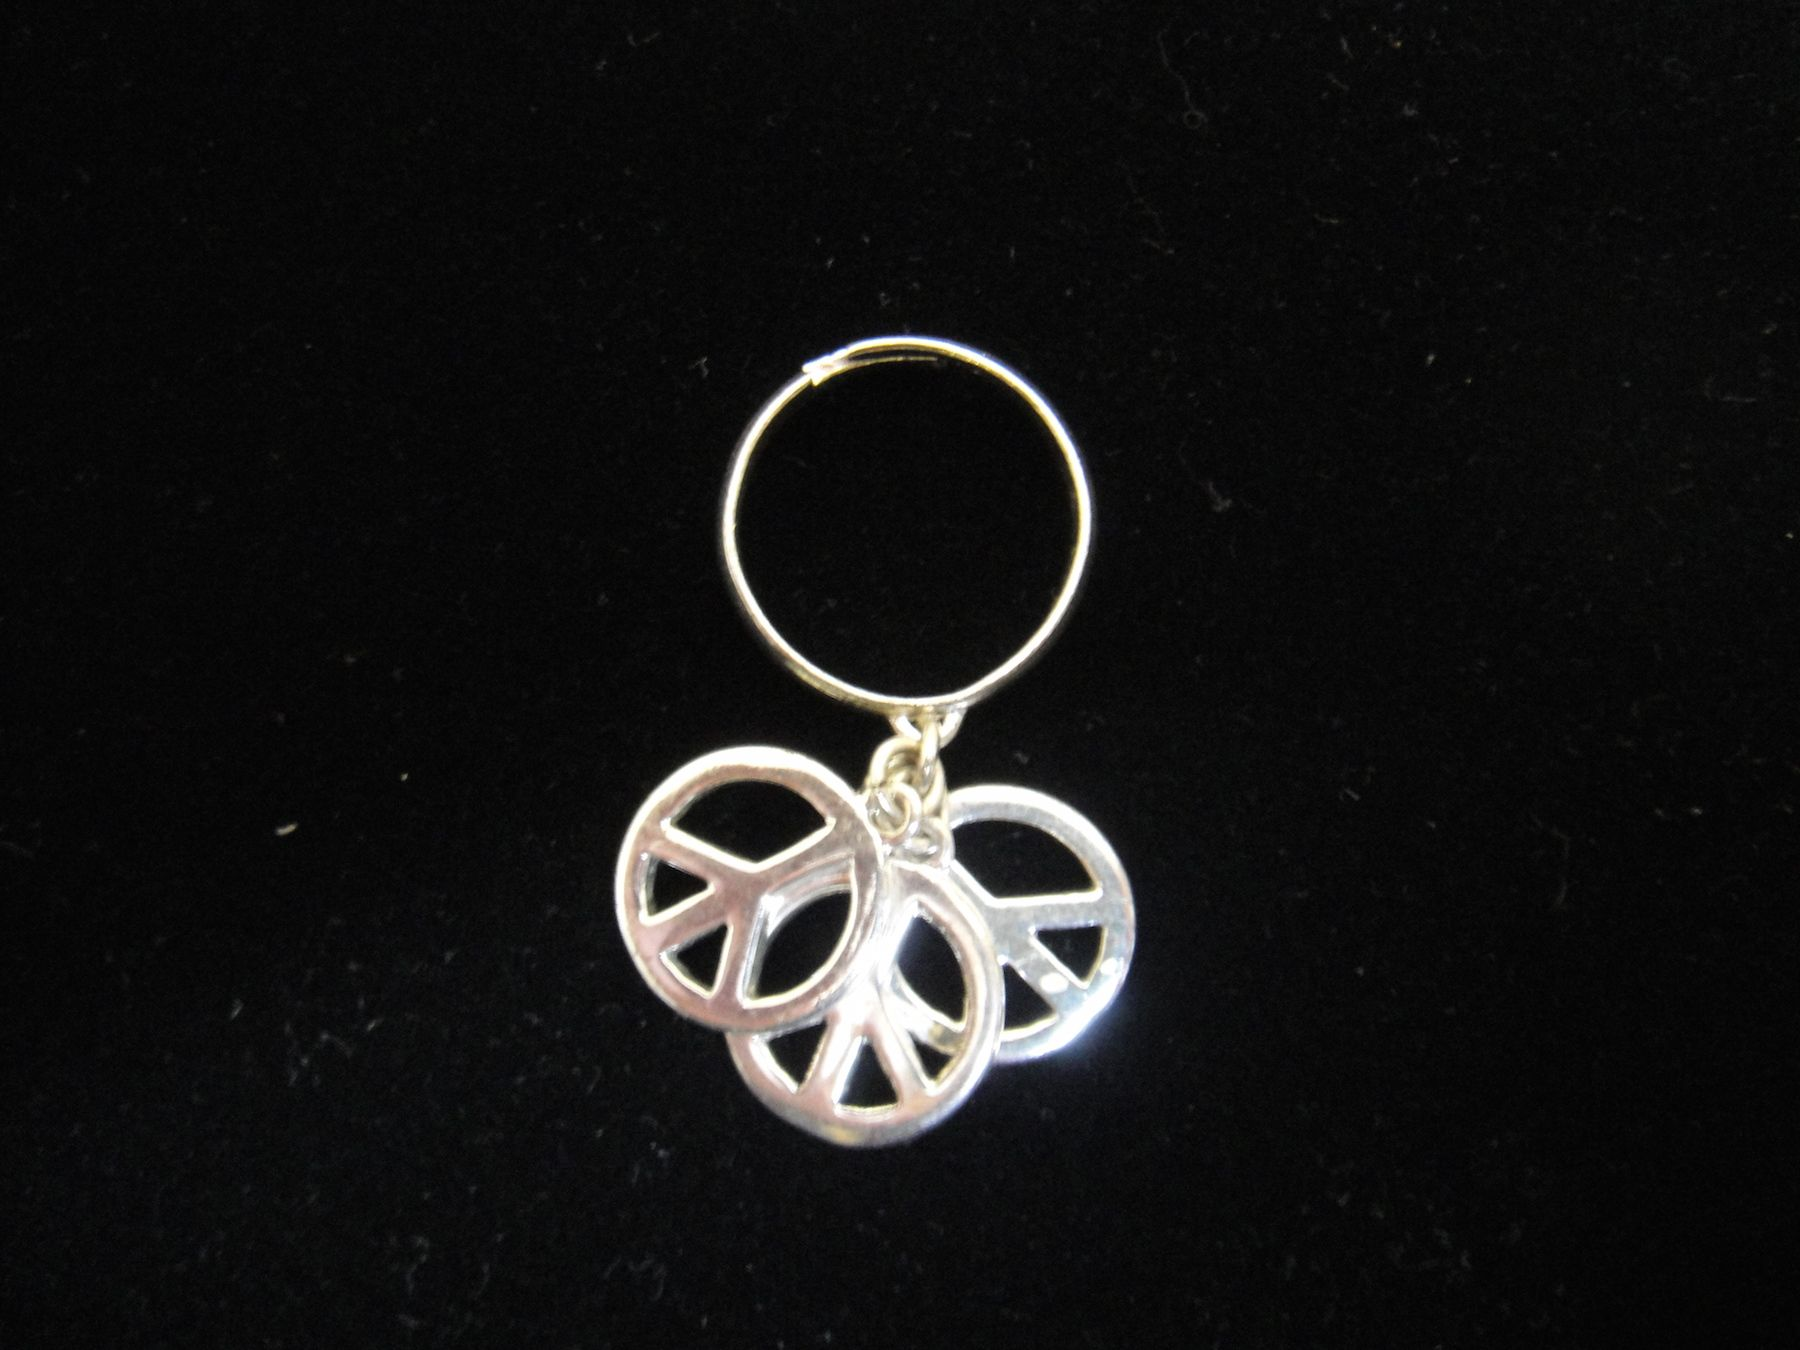 Silver adjustable peace sign ring